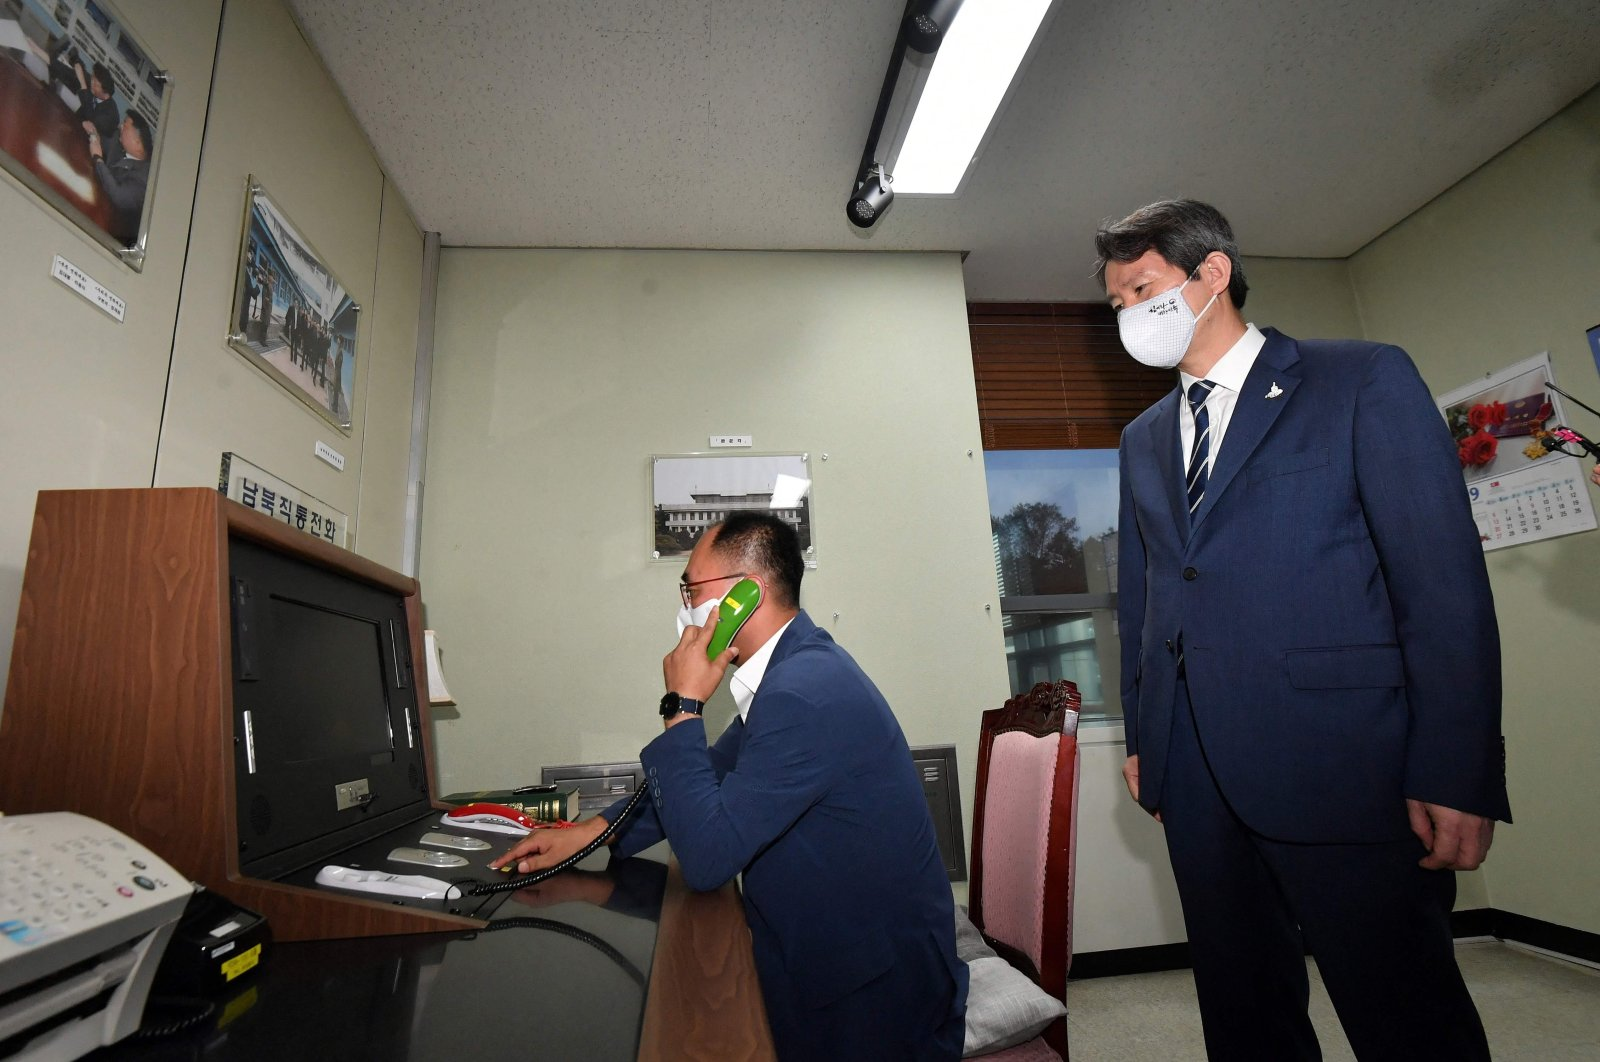 """South Korea's Unification Minister Lee In-young (R) looking at the inter-Korean """"hotline"""" during a visit to the south side of the truce village of Panmunjom in the Demilitarized Zone (DMZ) dividing the two Koreas, Sept. 16, 2020. (AFP Photo)"""